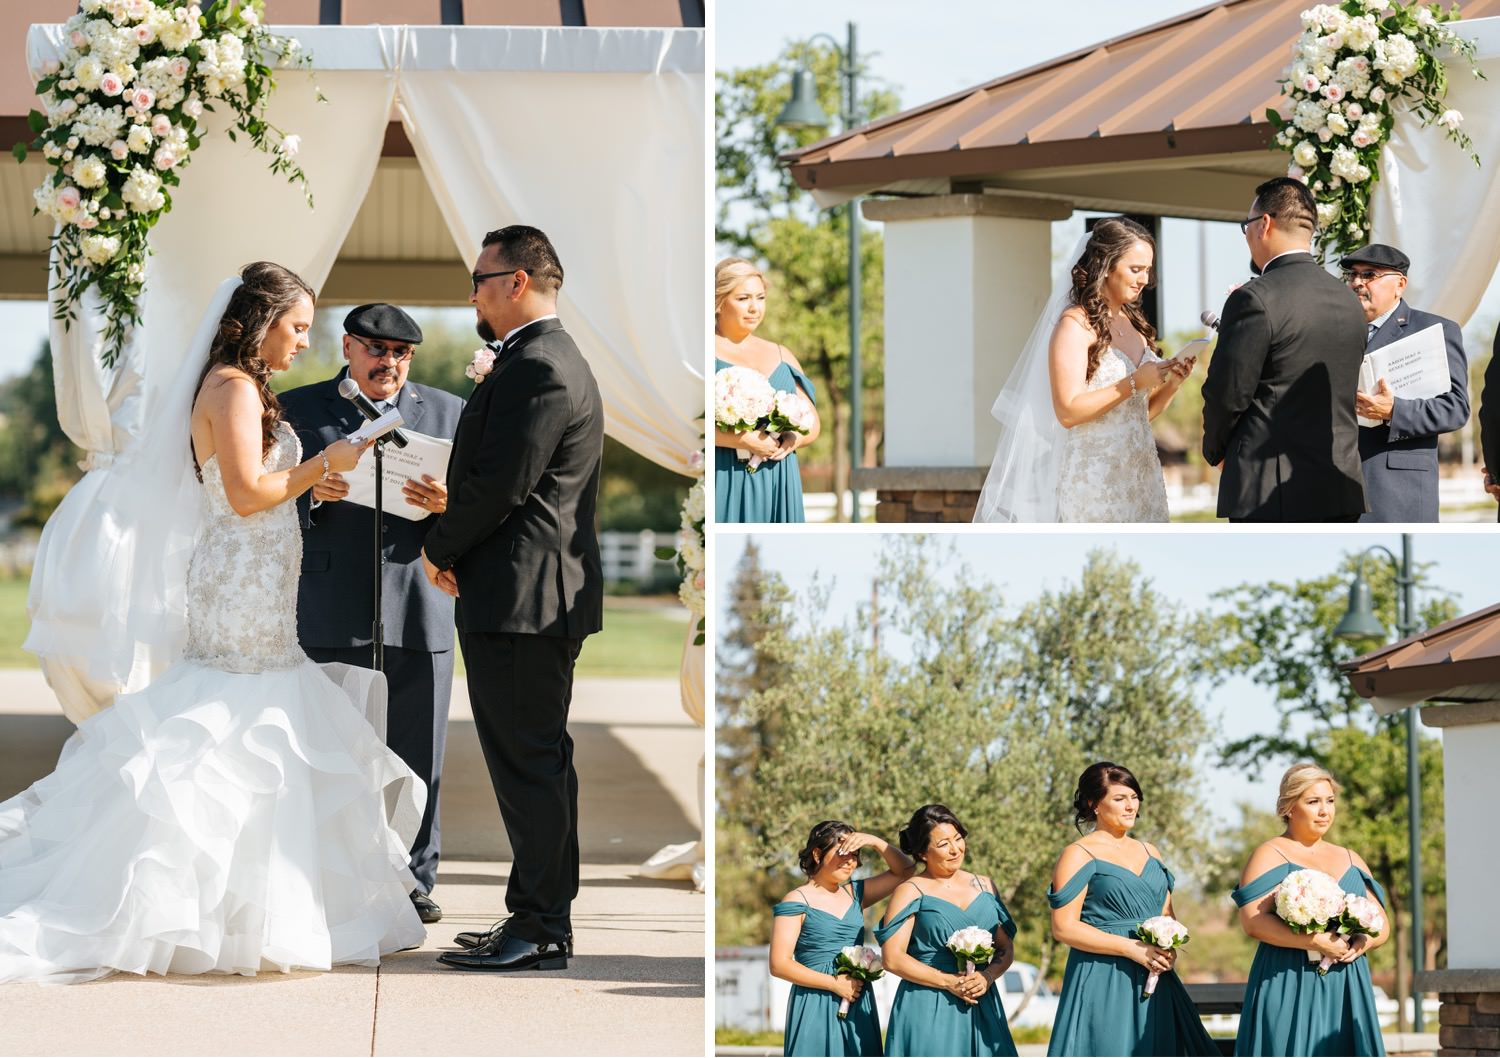 Chino Hills Community Center Wedding - Southern California Wedding Photographer - https://brittneyhannonphotography.com